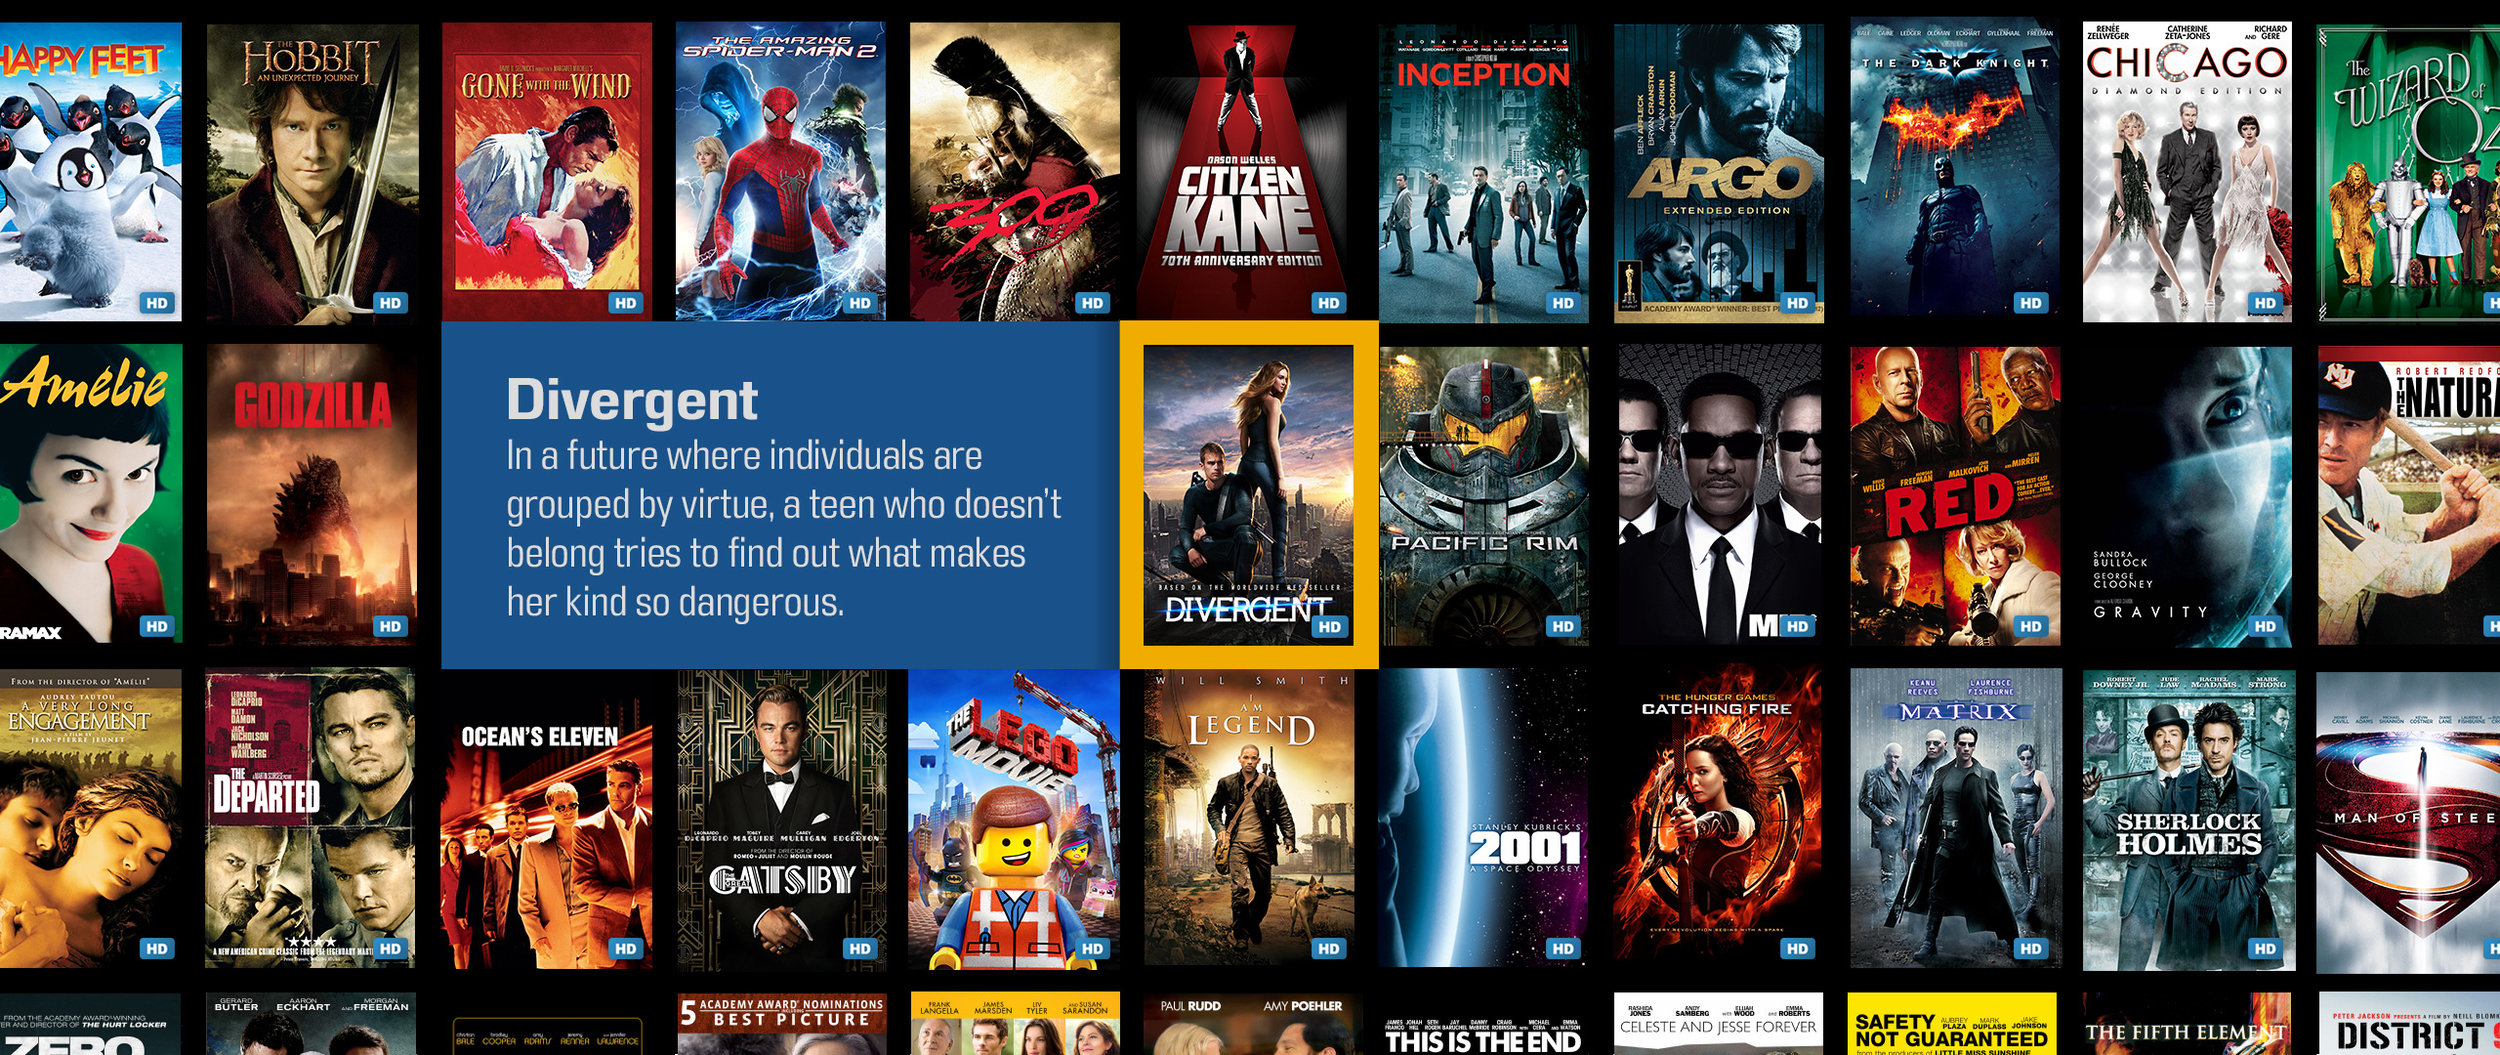 CinemaScape-Covers-View-Divergent.jpg